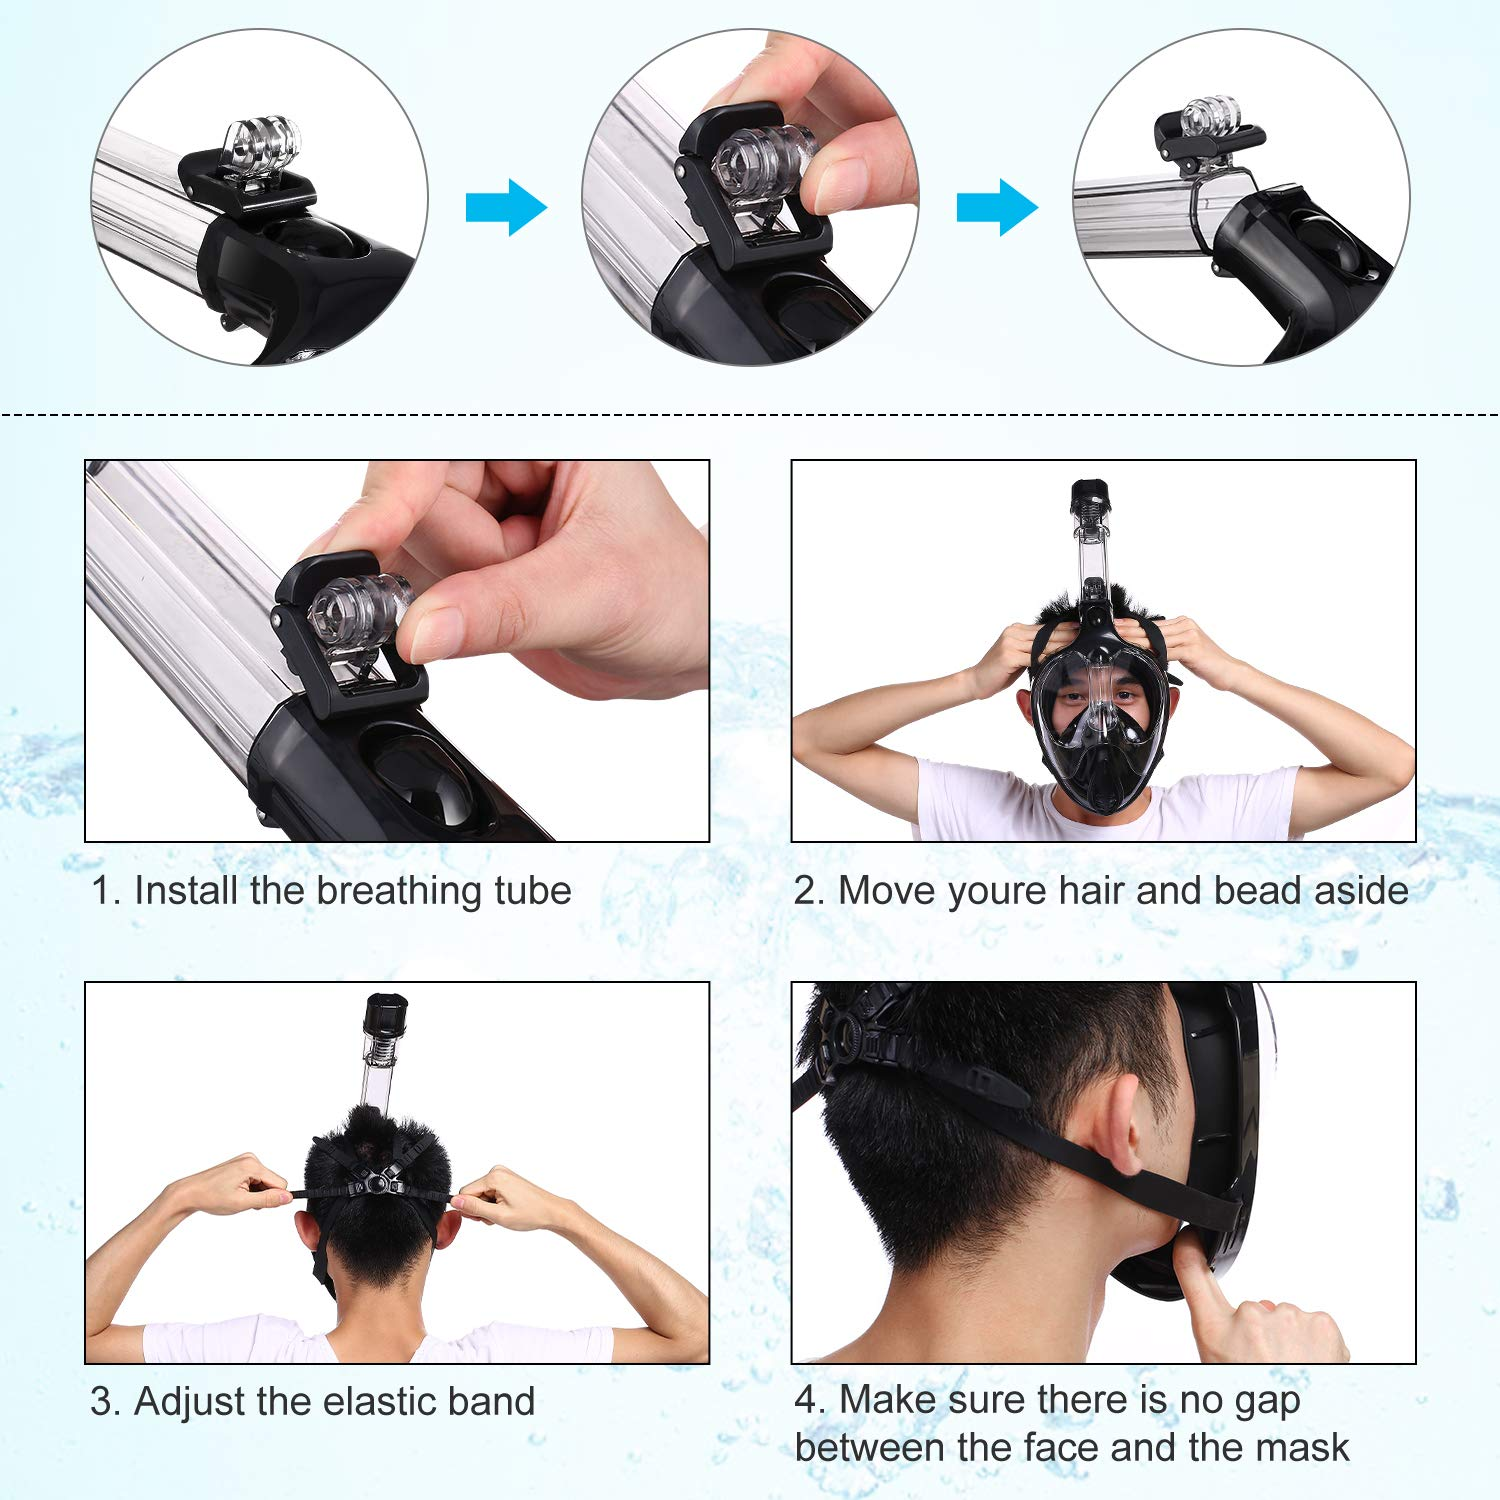 Adjustable Head Straps for Adults /& Kids OppsDecor Snorkel Mask Full Face 180/°Panoramic View Diving Mask with Detachable Camera Mount,Anti-Fog Anti-Leak